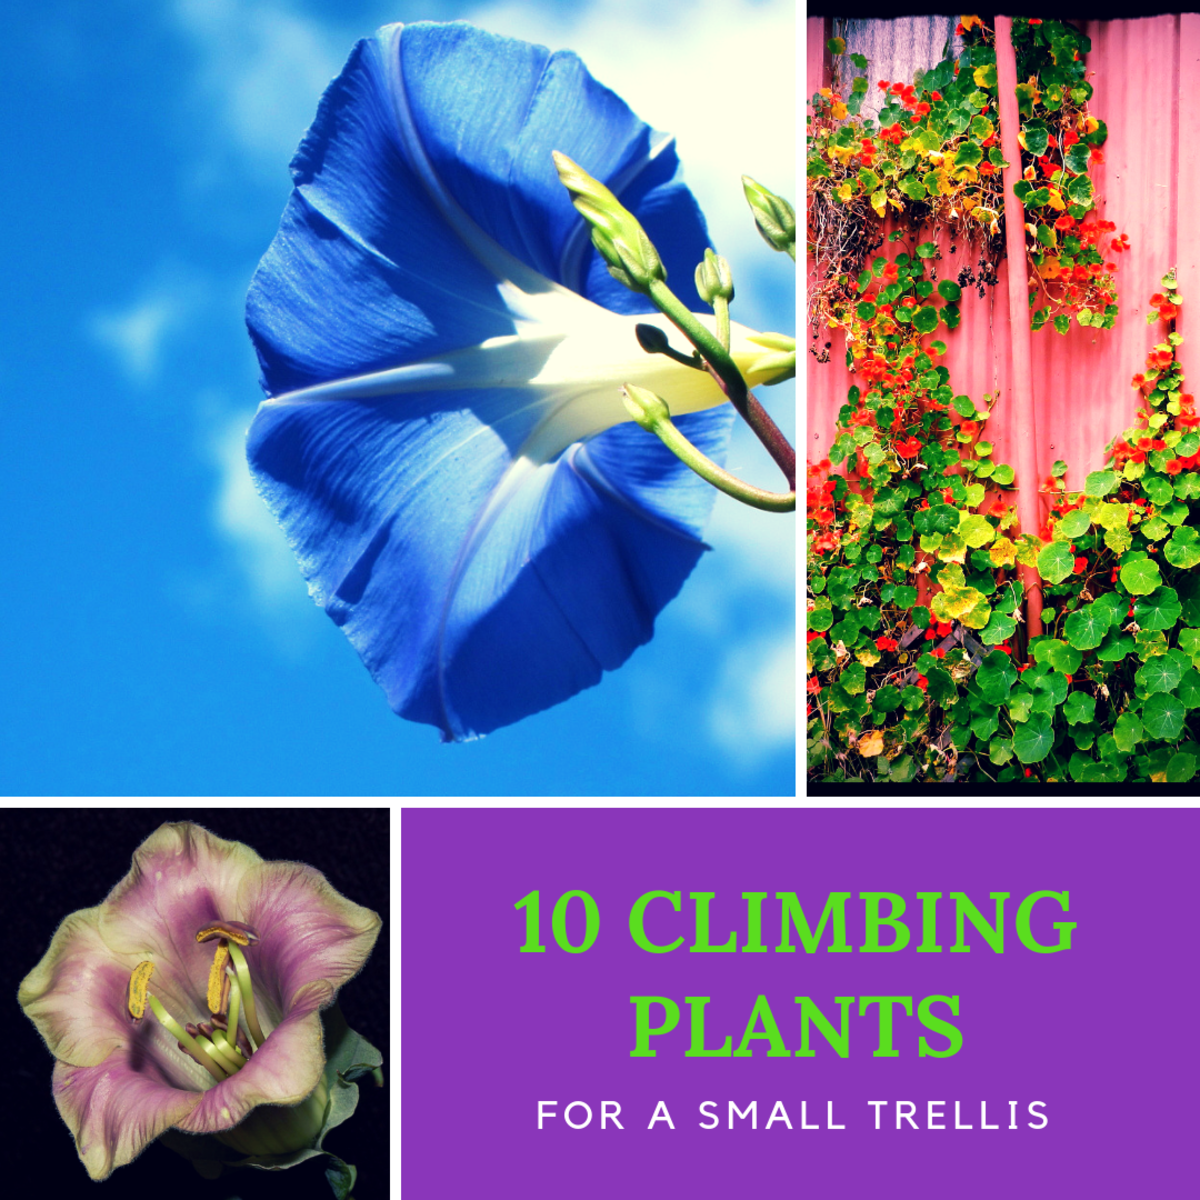 Top 10 Climbing Plants for a Small Trellis